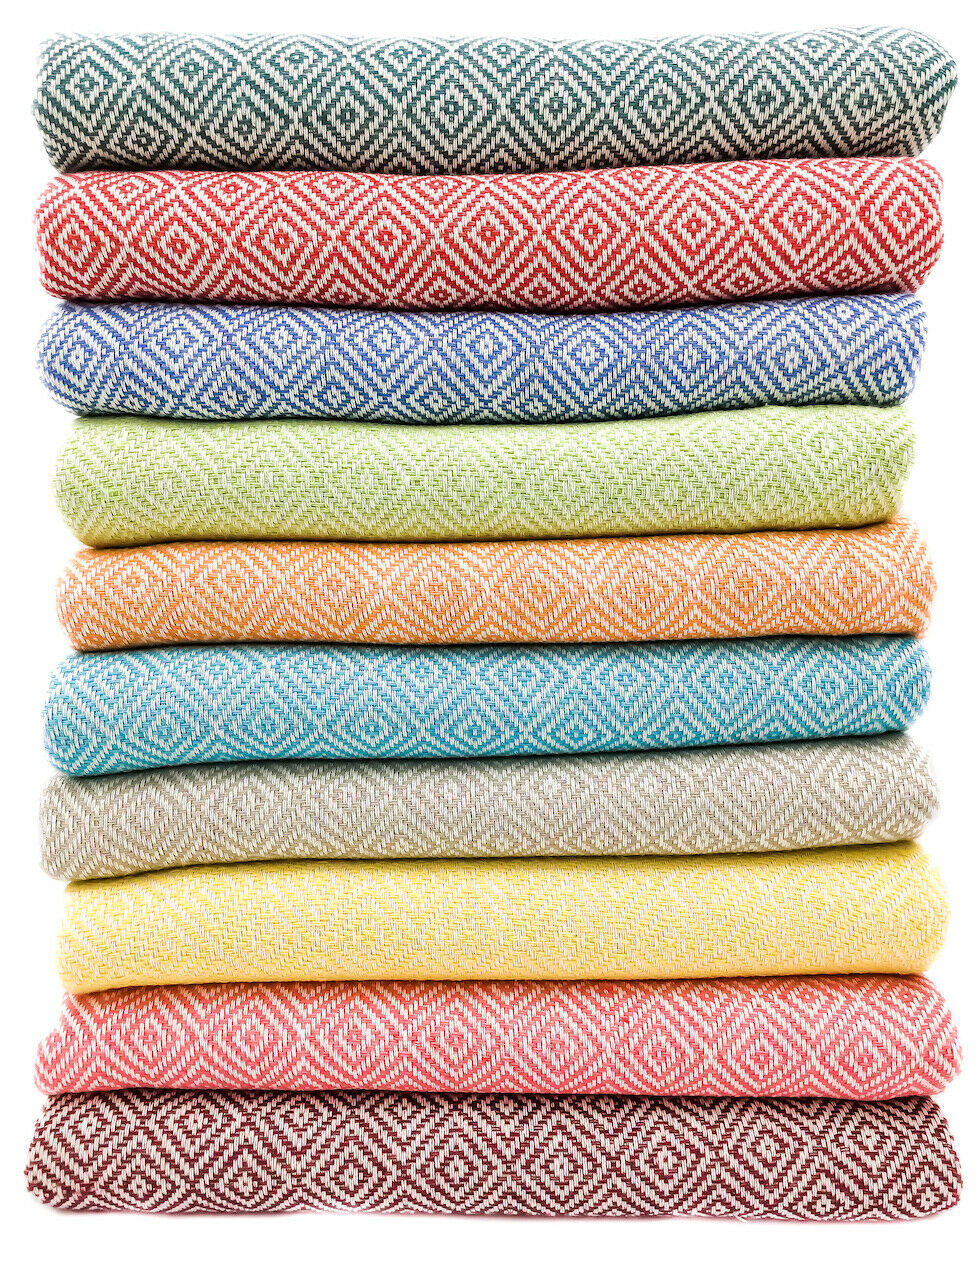 Pin On Towel Section